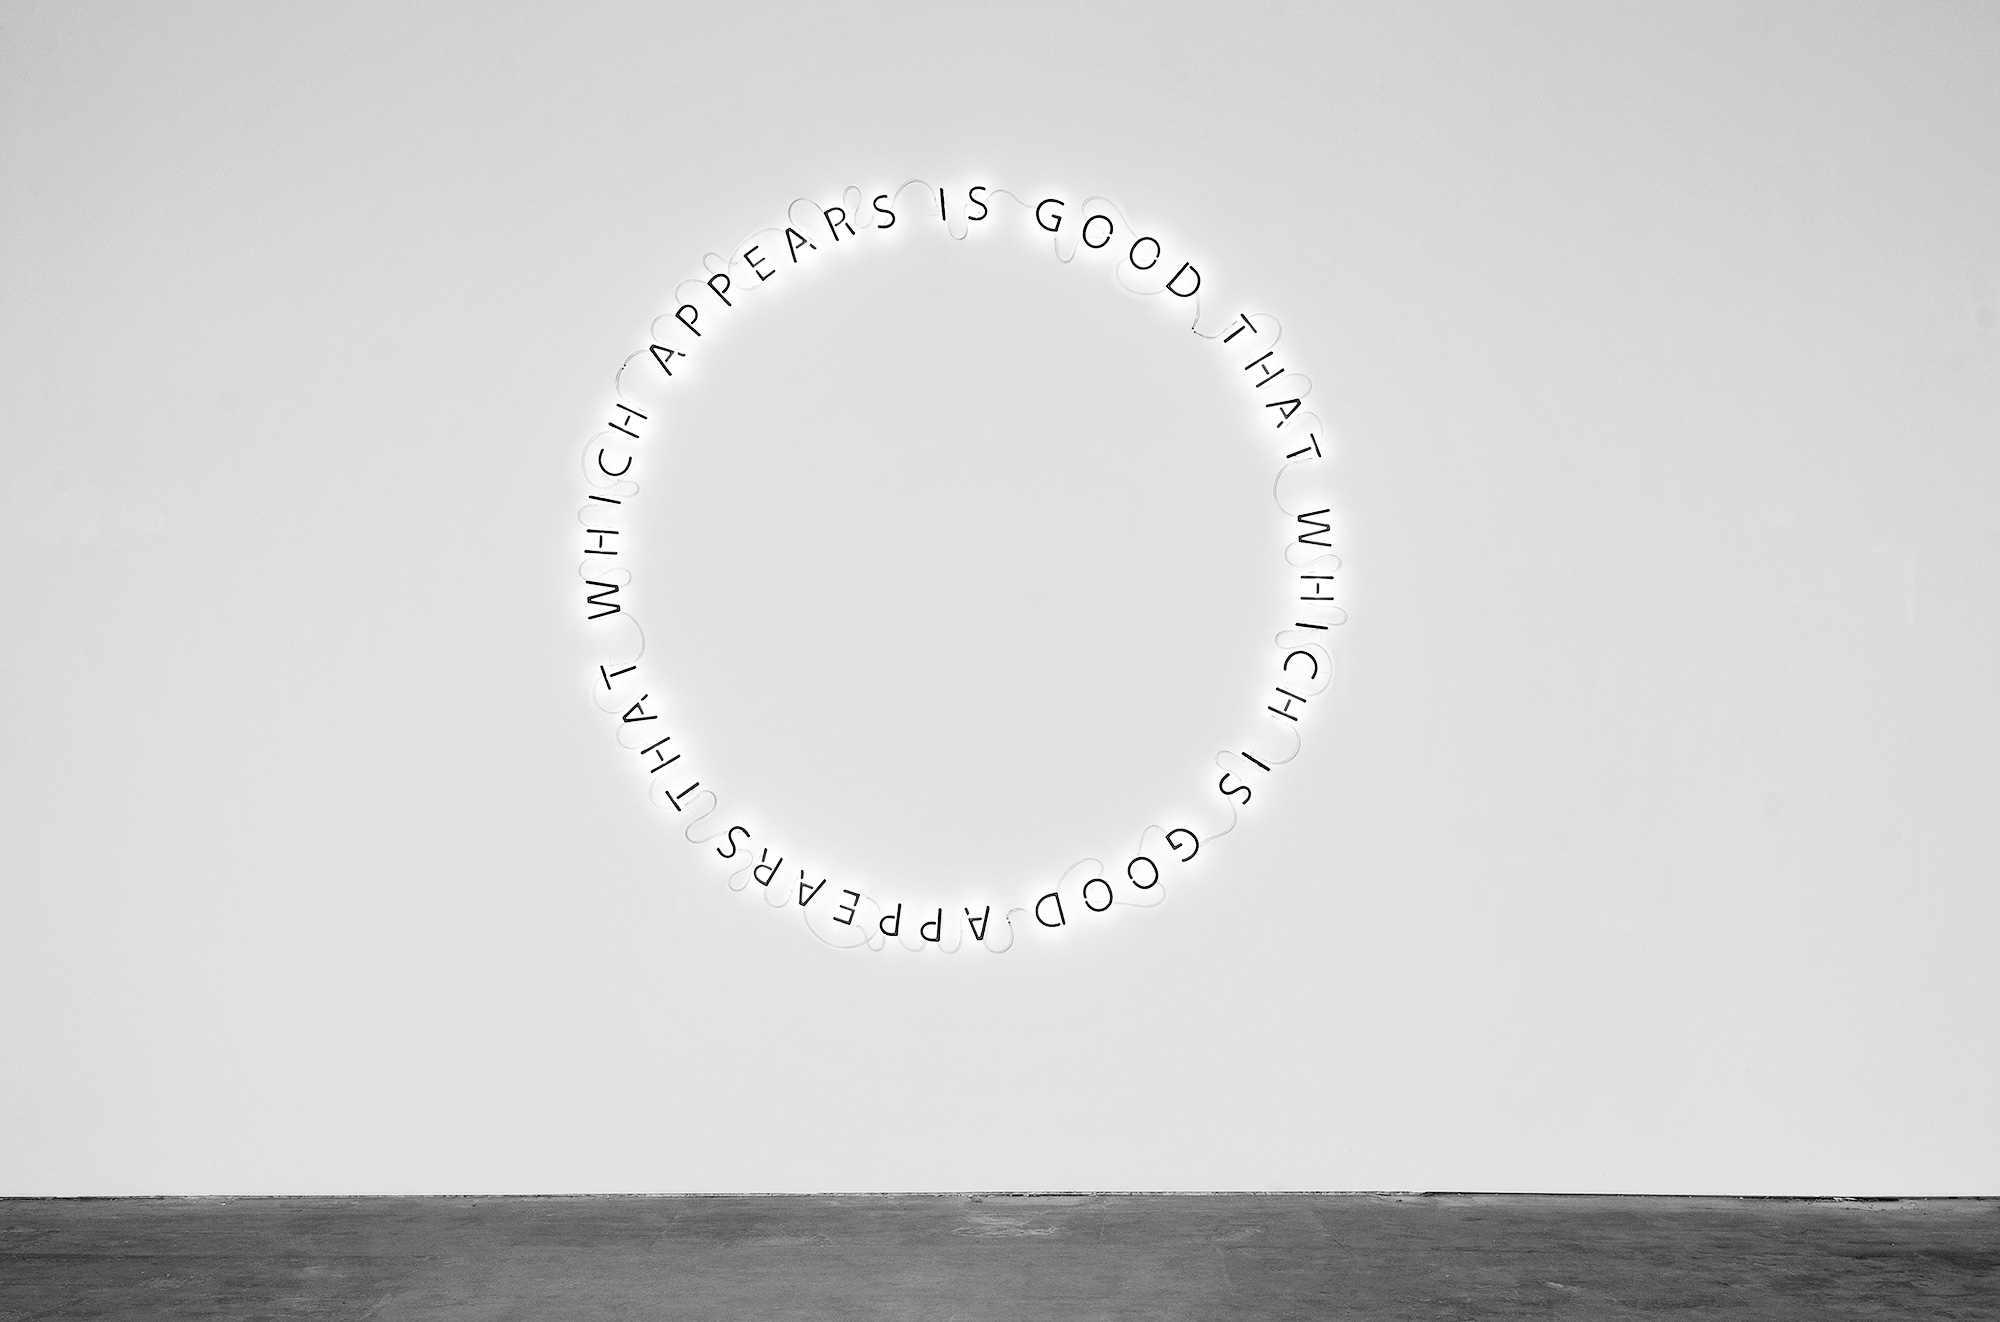 Famed, Untitled [That Which Appears Is Good That Which Is Good Appears]